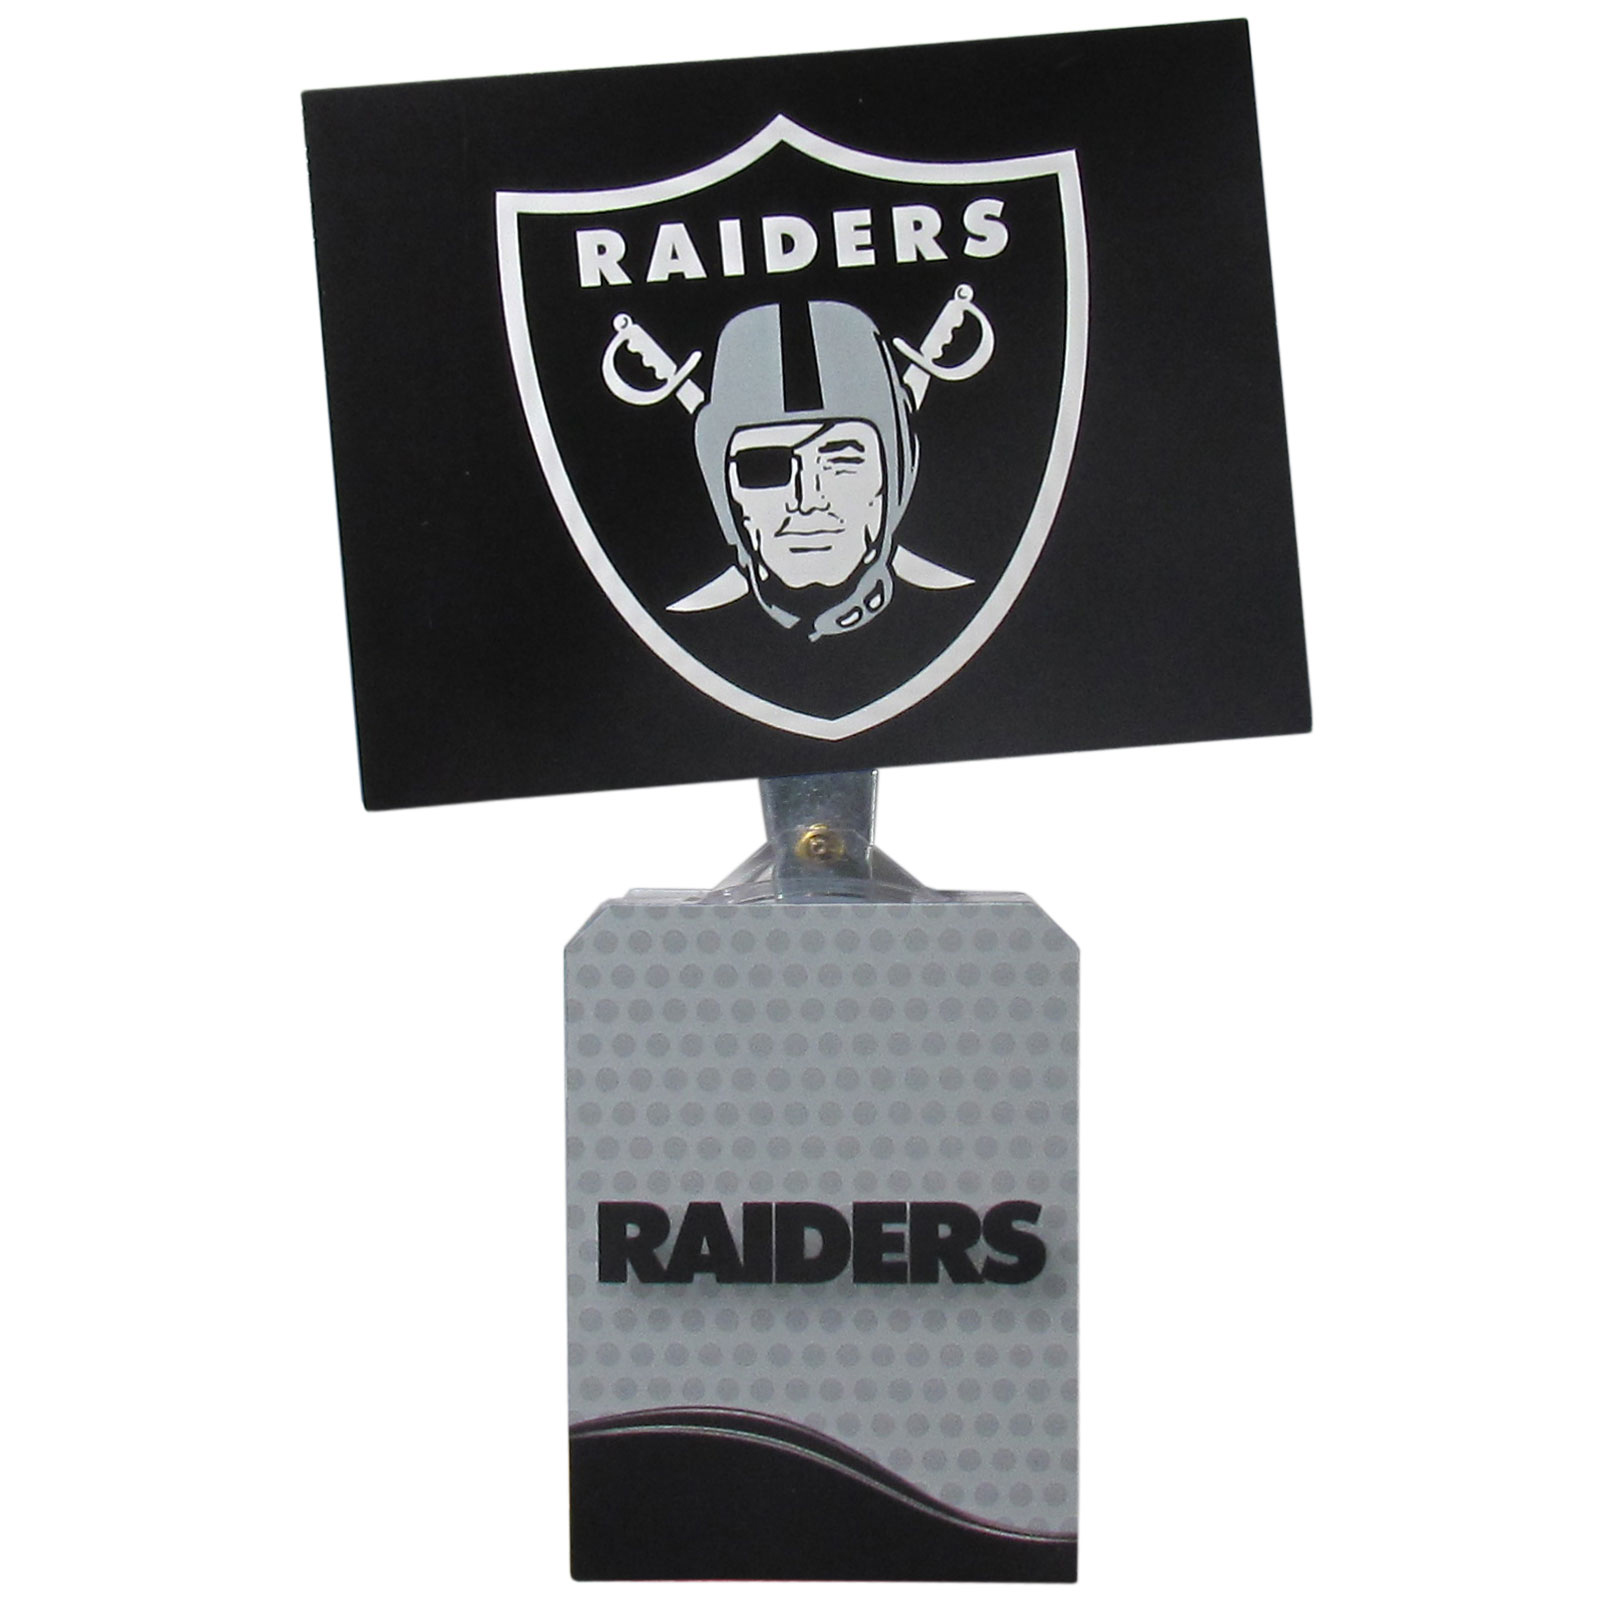 Oakland Raiders Solar Flags - Get pumped up on the way to game with Siskiyou's Chicago Bears Oakland Raiders Solar Flag that mounts to your dashboard or window. The in-motion solar flag also doubles as decoration for your tailgate or homegate! The base of the flag is 3 inches tall and the flag is 4 inches making the entire in-motion solar flag stand at 7 inches tall. Keep your spirit moving with your favorite team's Solar Flag.